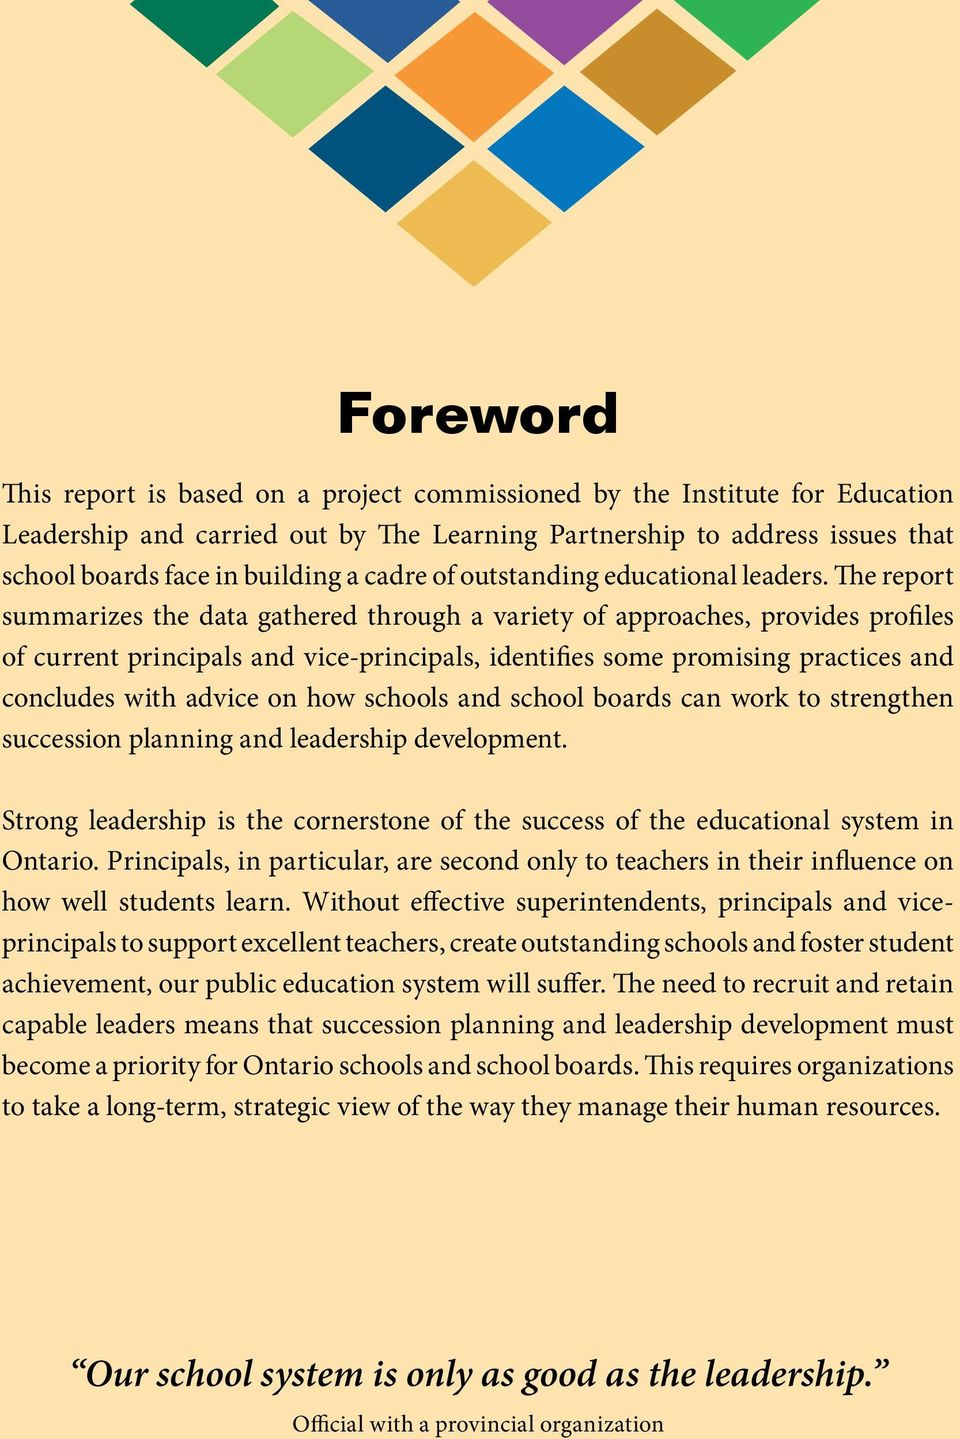 The report summarizes the data gathered through a variety of approaches, provides profiles of current principals and vice-principals, identifies some promising practices and concludes with advice on